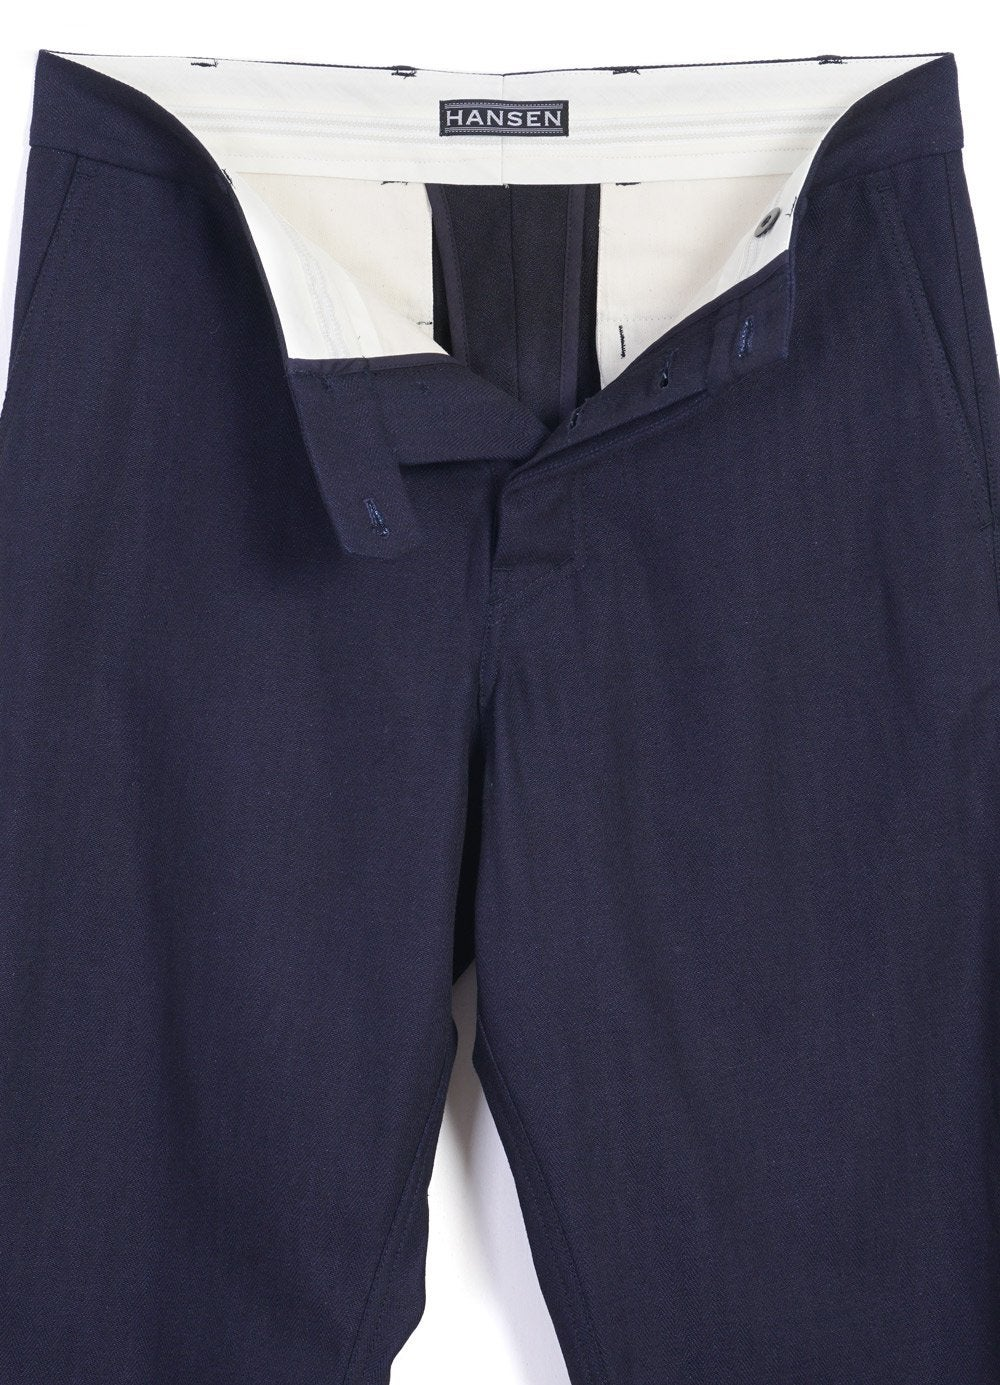 Hansen Garments KIAN | Wide Fit Trousers | Indigo